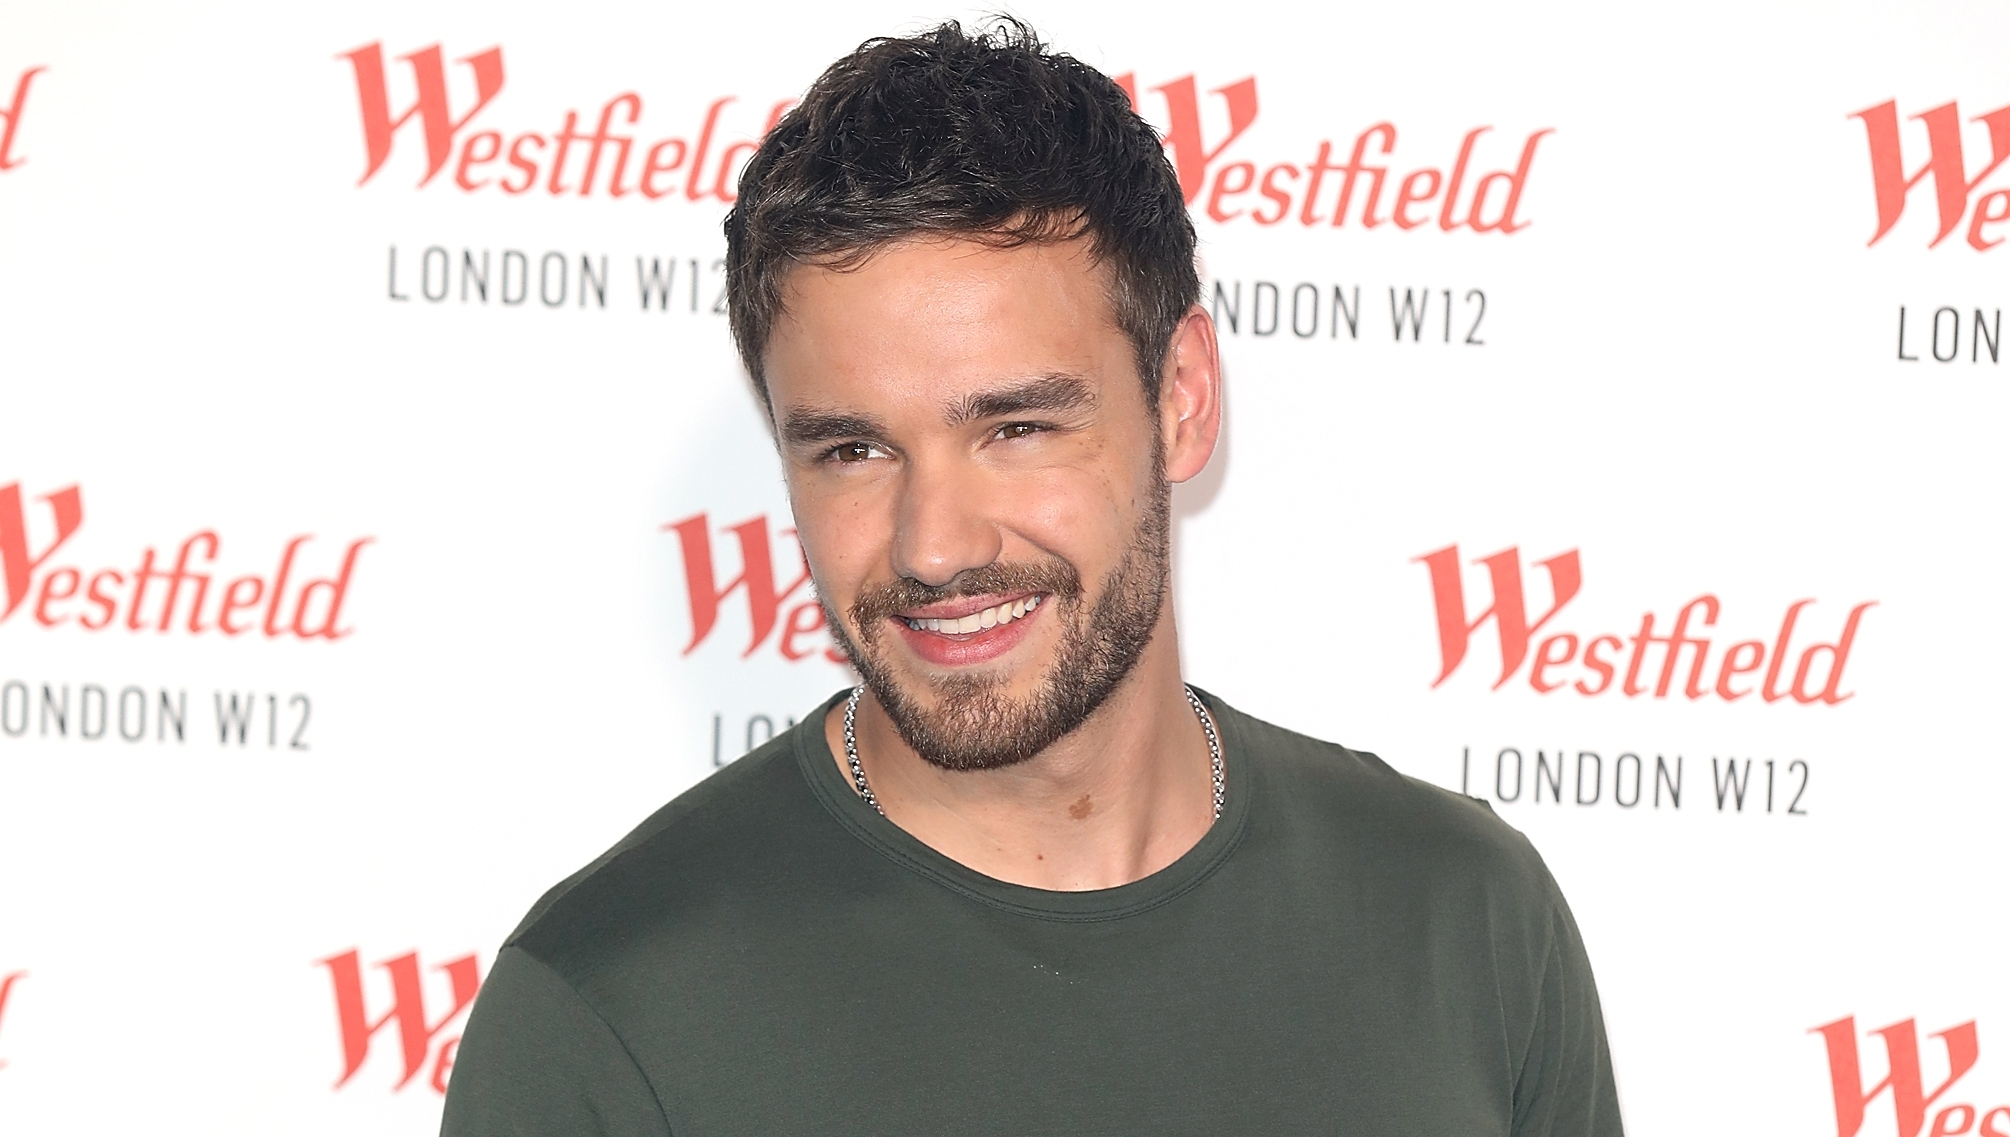 Liam Payne Tweets Support For Cheryl